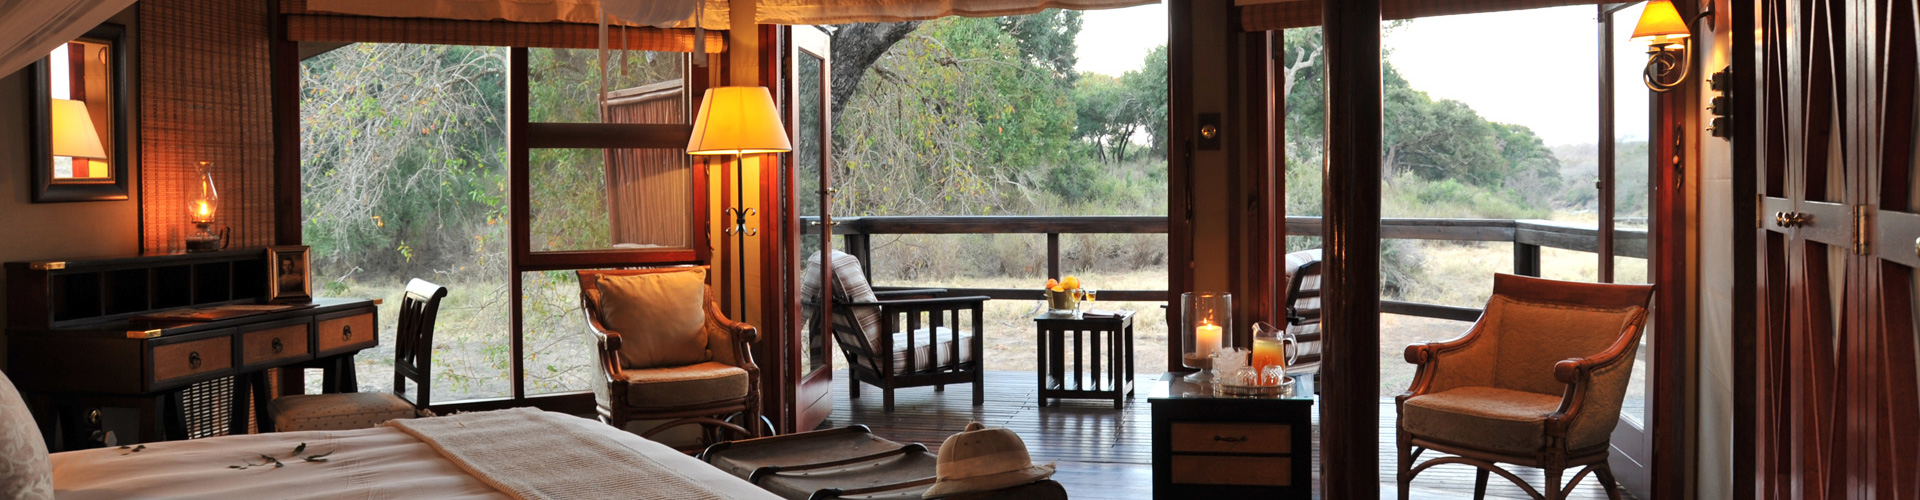 Hamilton's-Tented-Camp-Bedroom-View